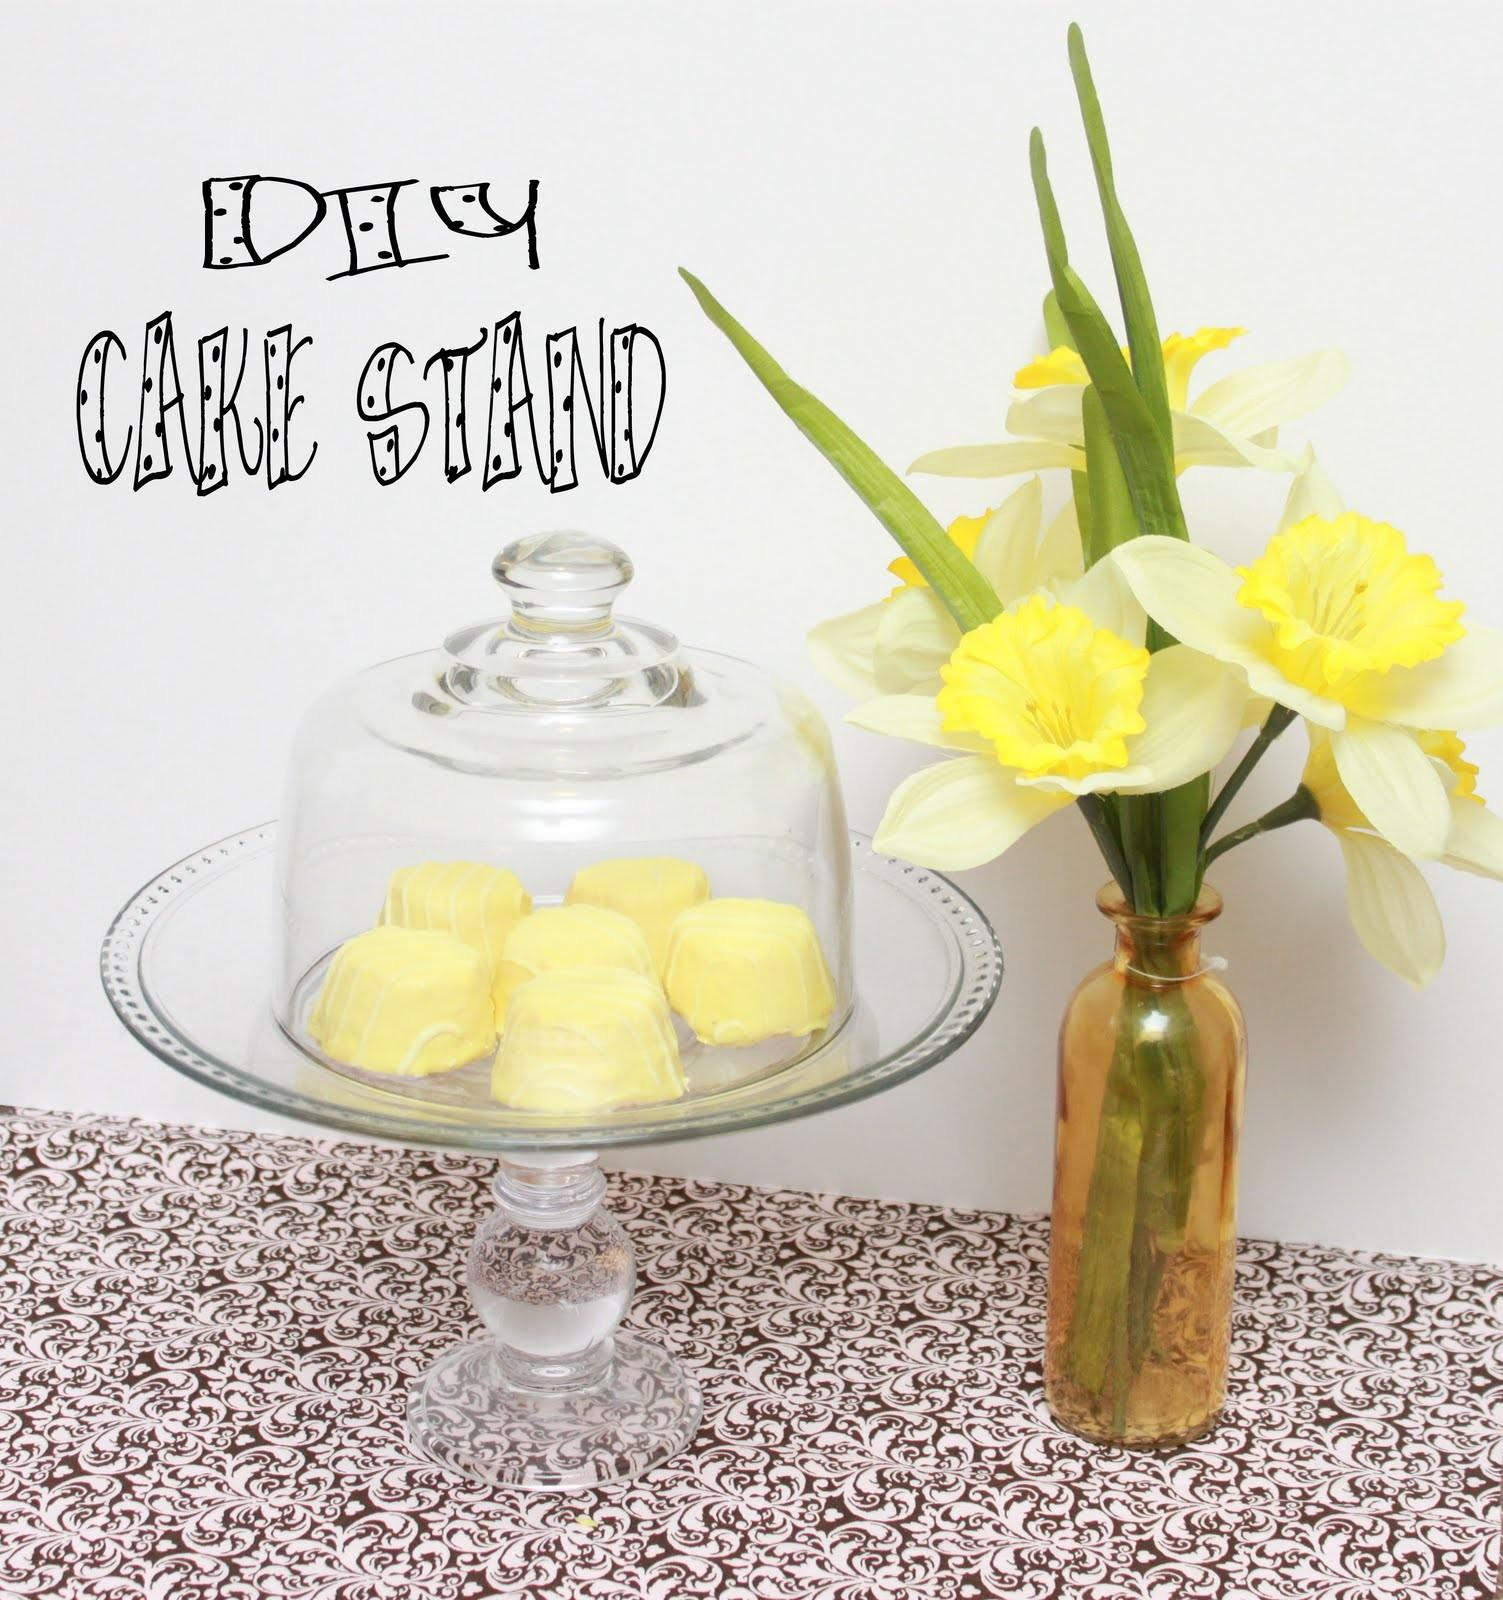 Polka Dotted Elephants Diy Cake Stand